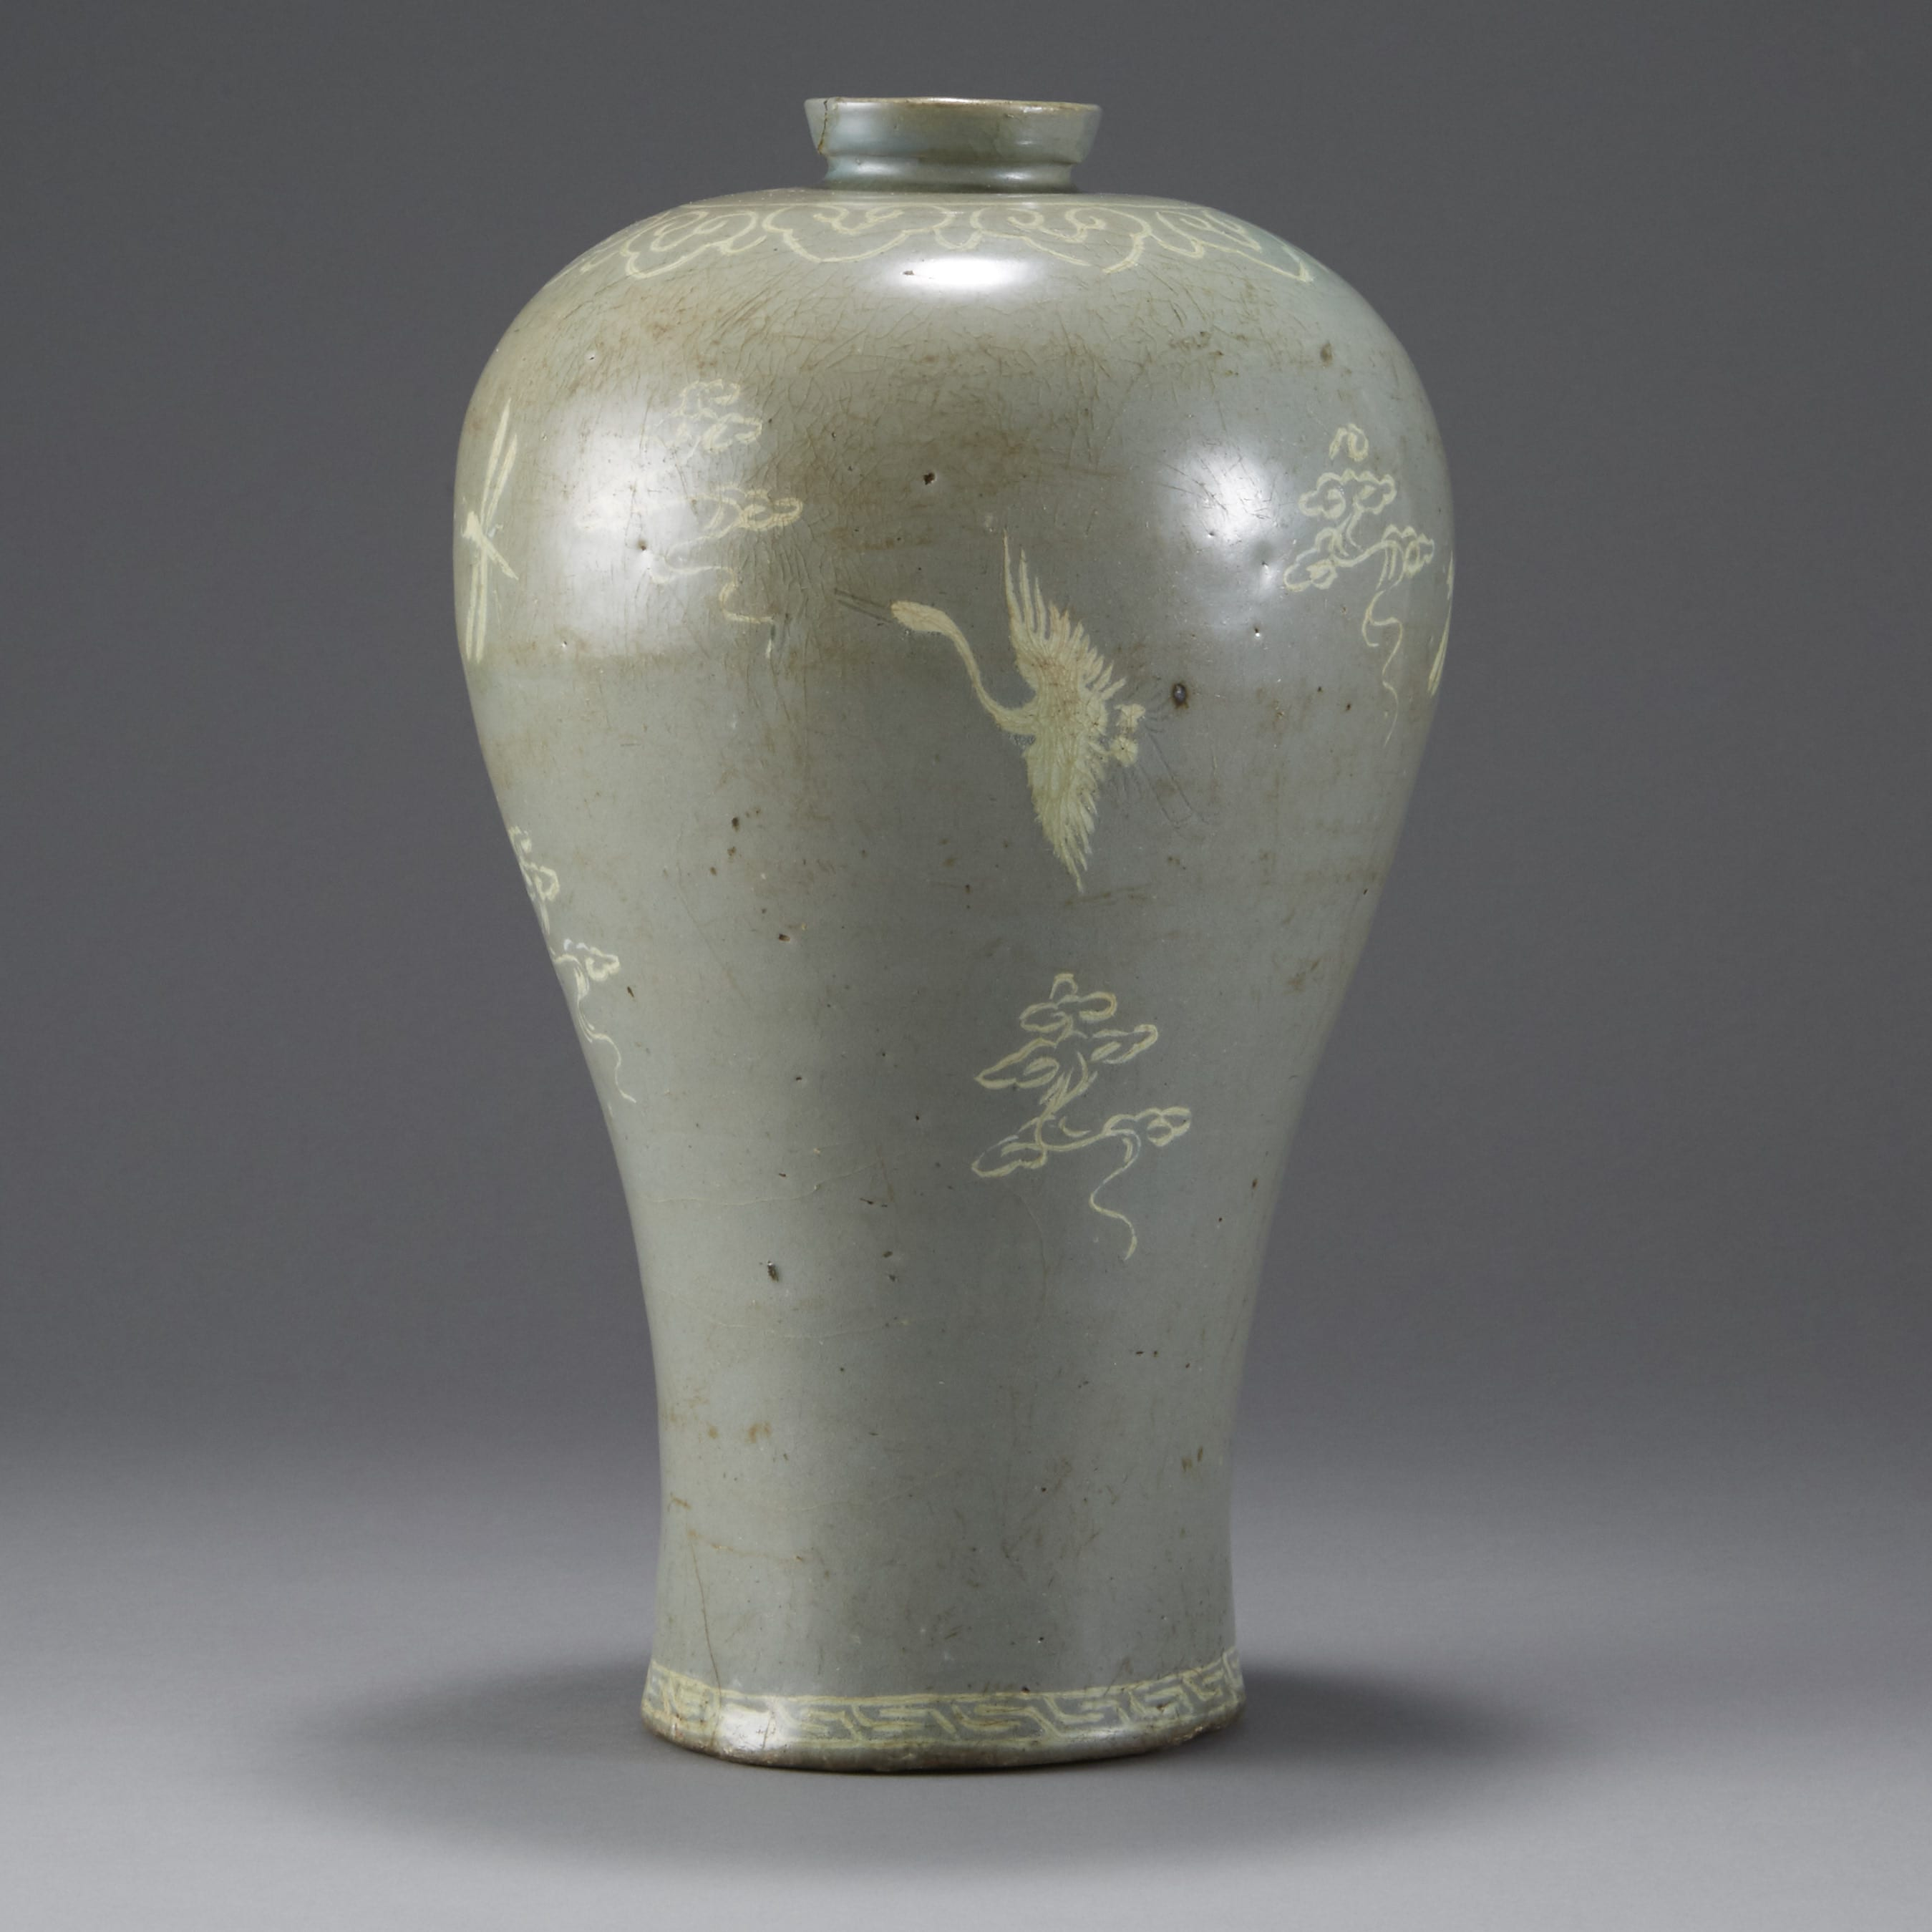 Lot 157: Korean Inlaid Celadon Maebyong Vase - Goryeo dynasty (918-1392)